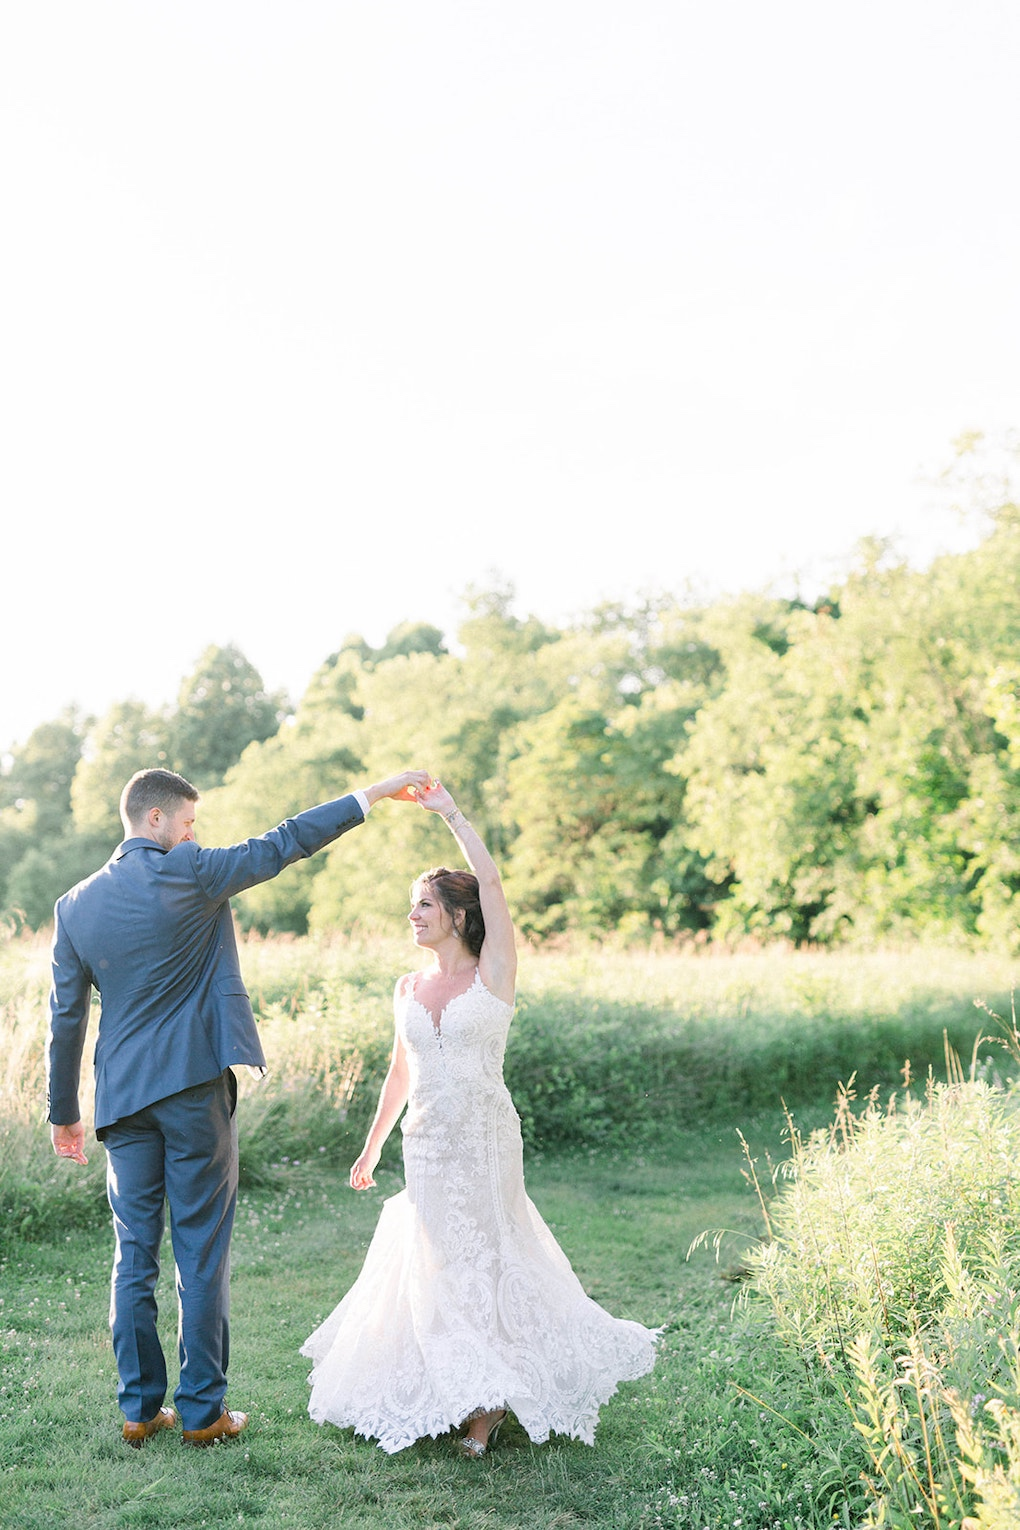 Golden Hour Wedding Photos: Pittsburgh Botanic Garden wedding planned by Exhale Events. See more wedding inspiration at exhale-events.com!